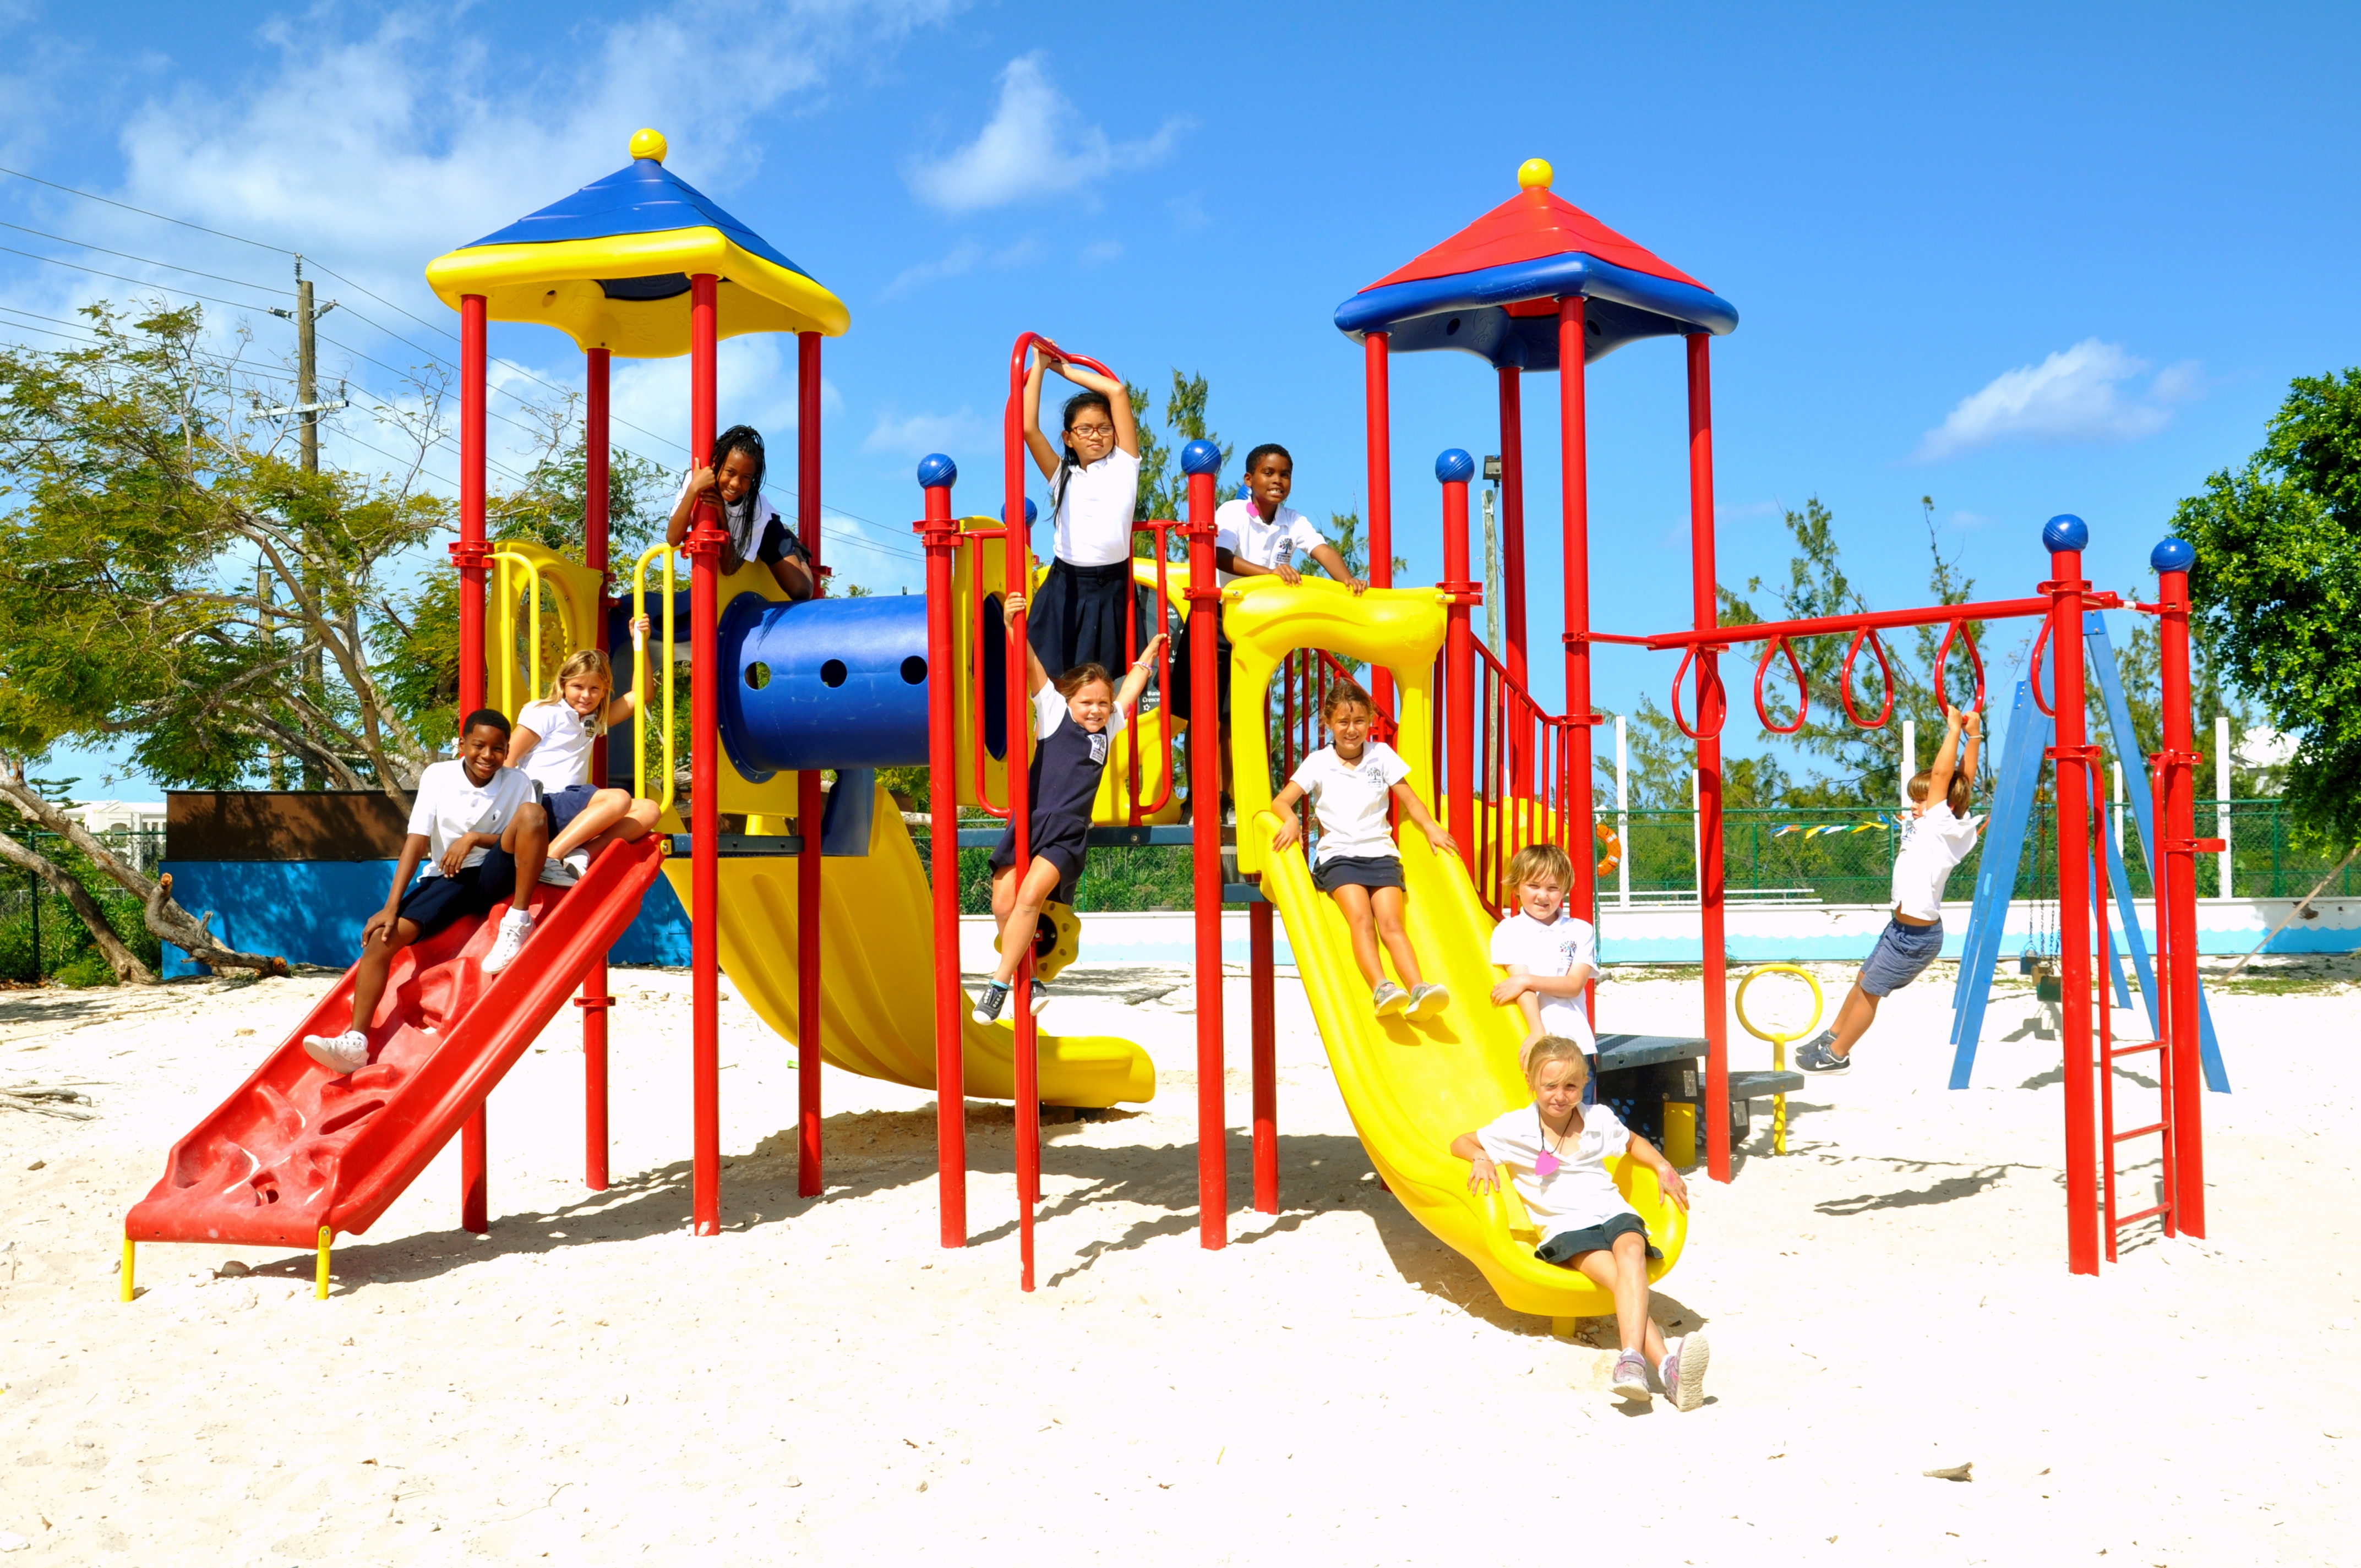 International School Playground